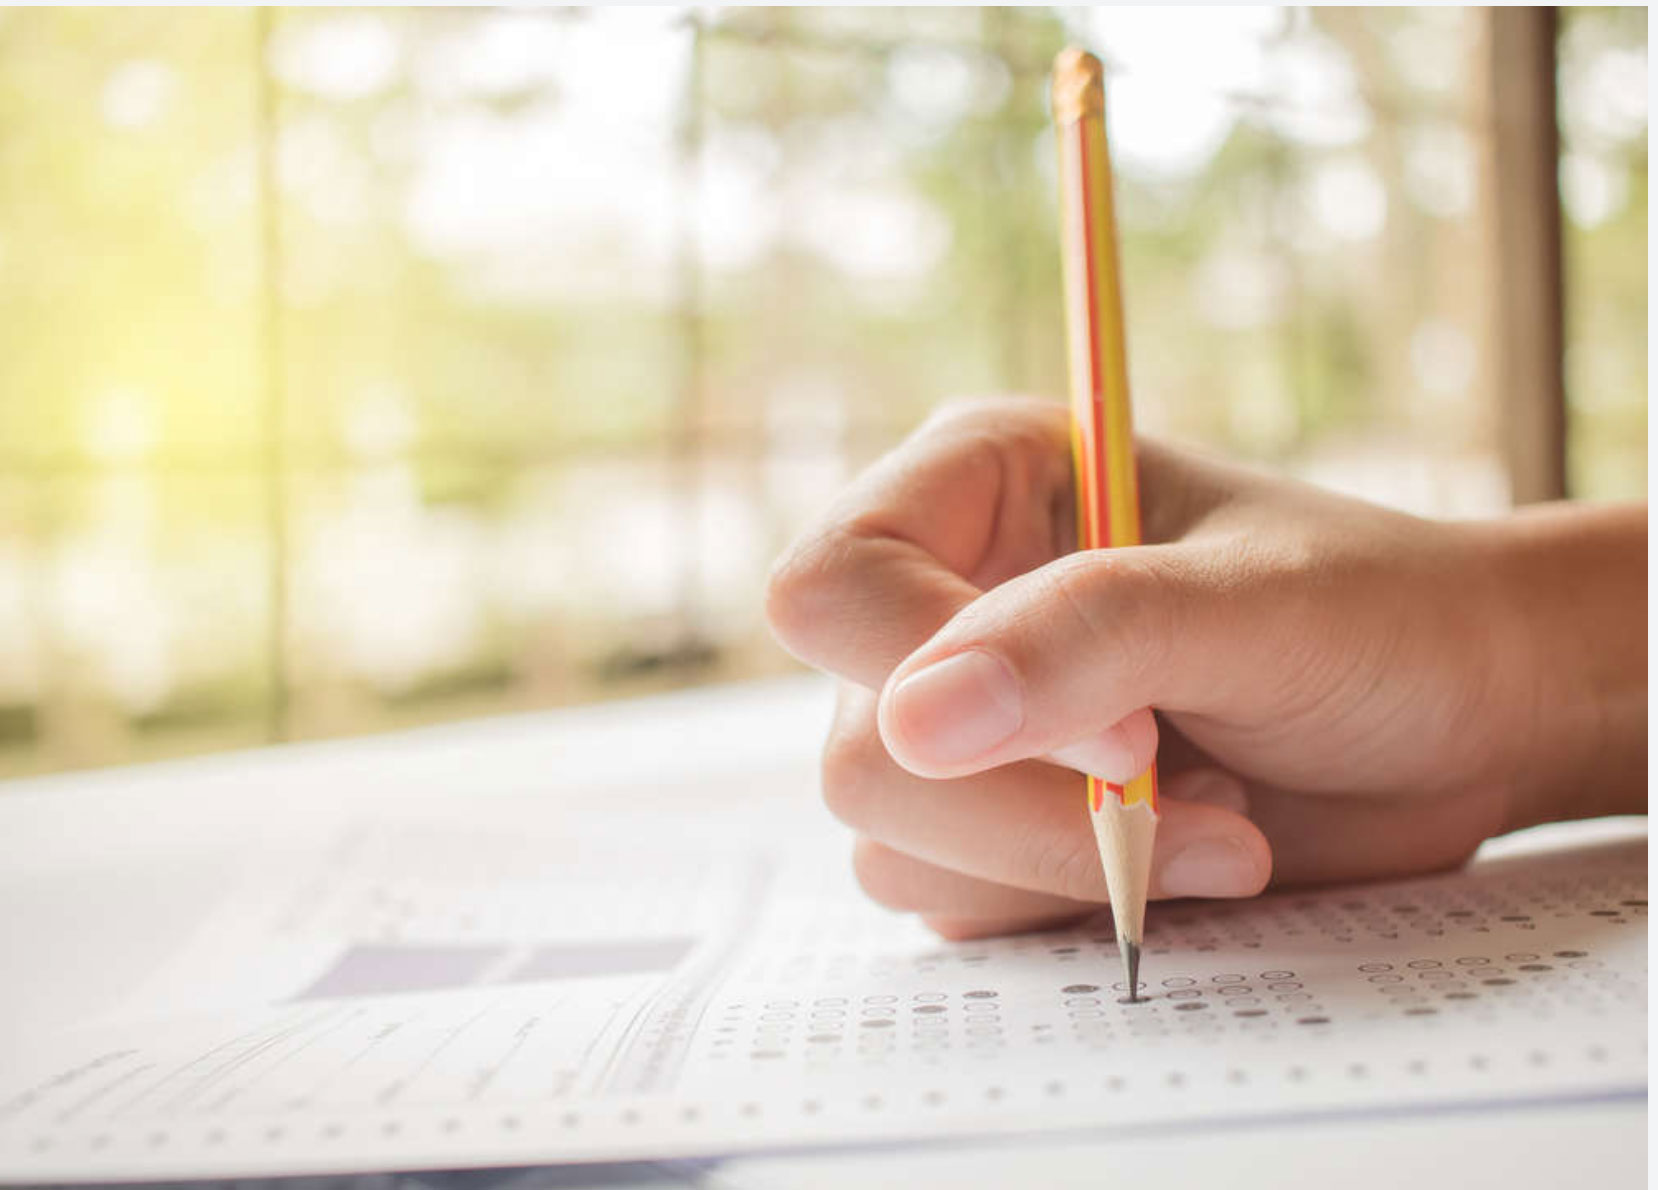 tips for how to prepare your students for standardized tests